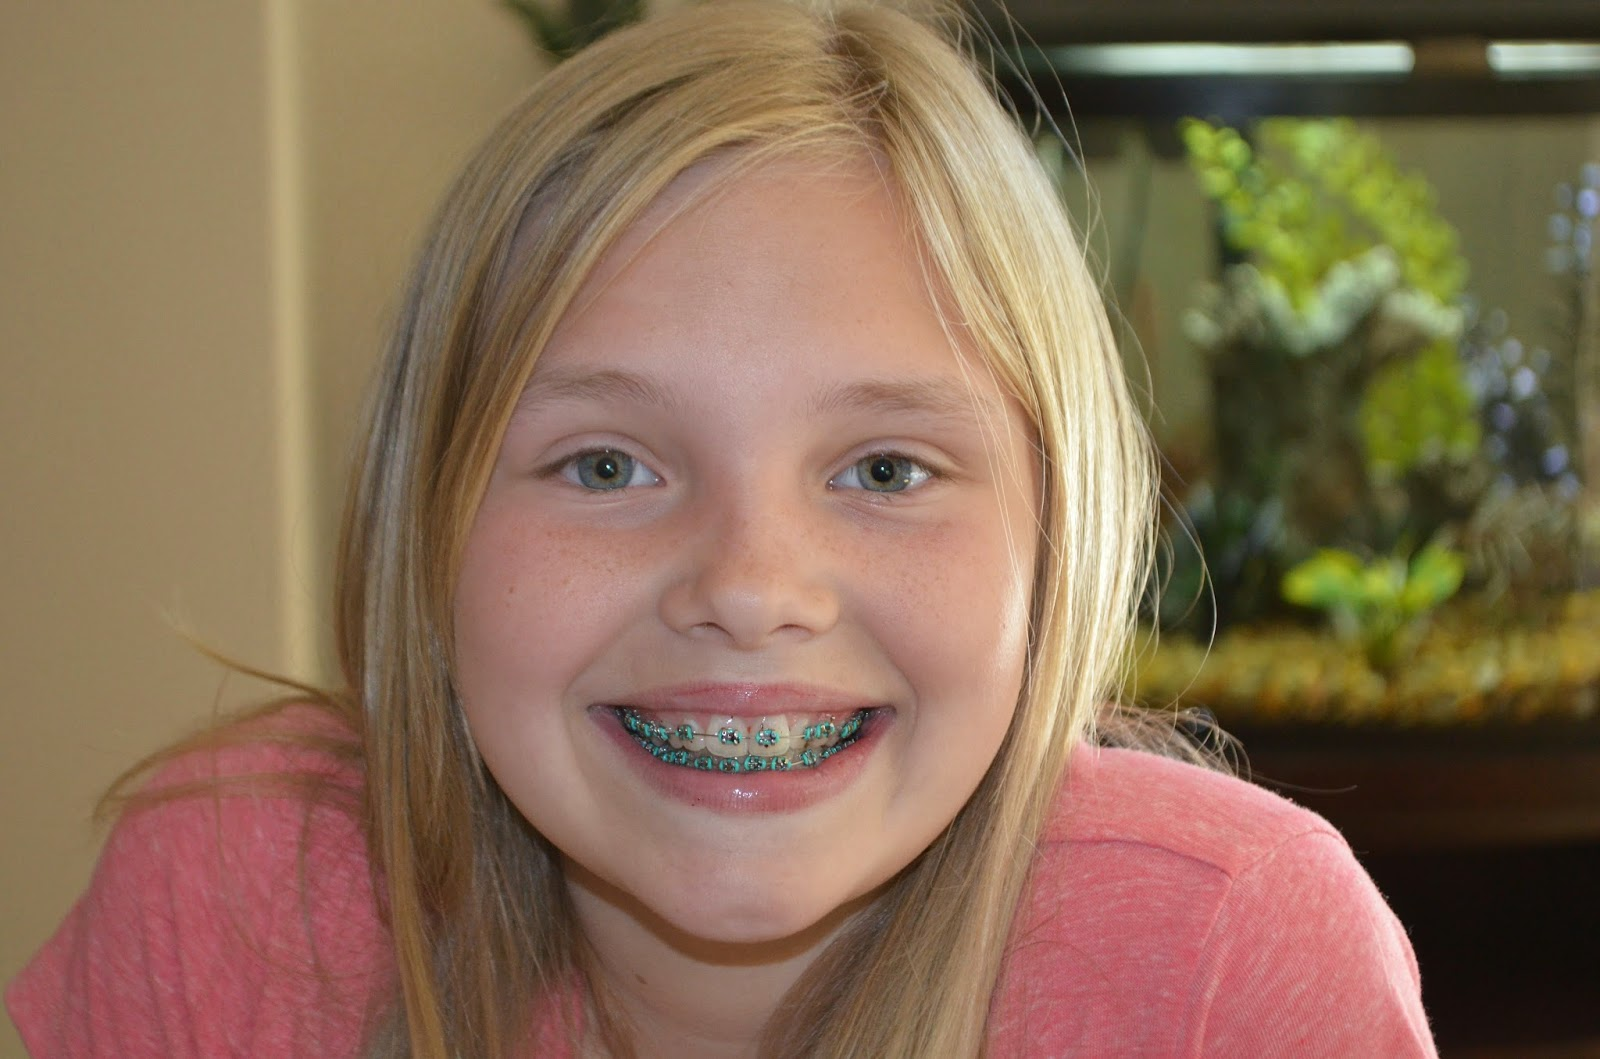 Braces Picture Galleries - AZ Gals. Free porn from A to